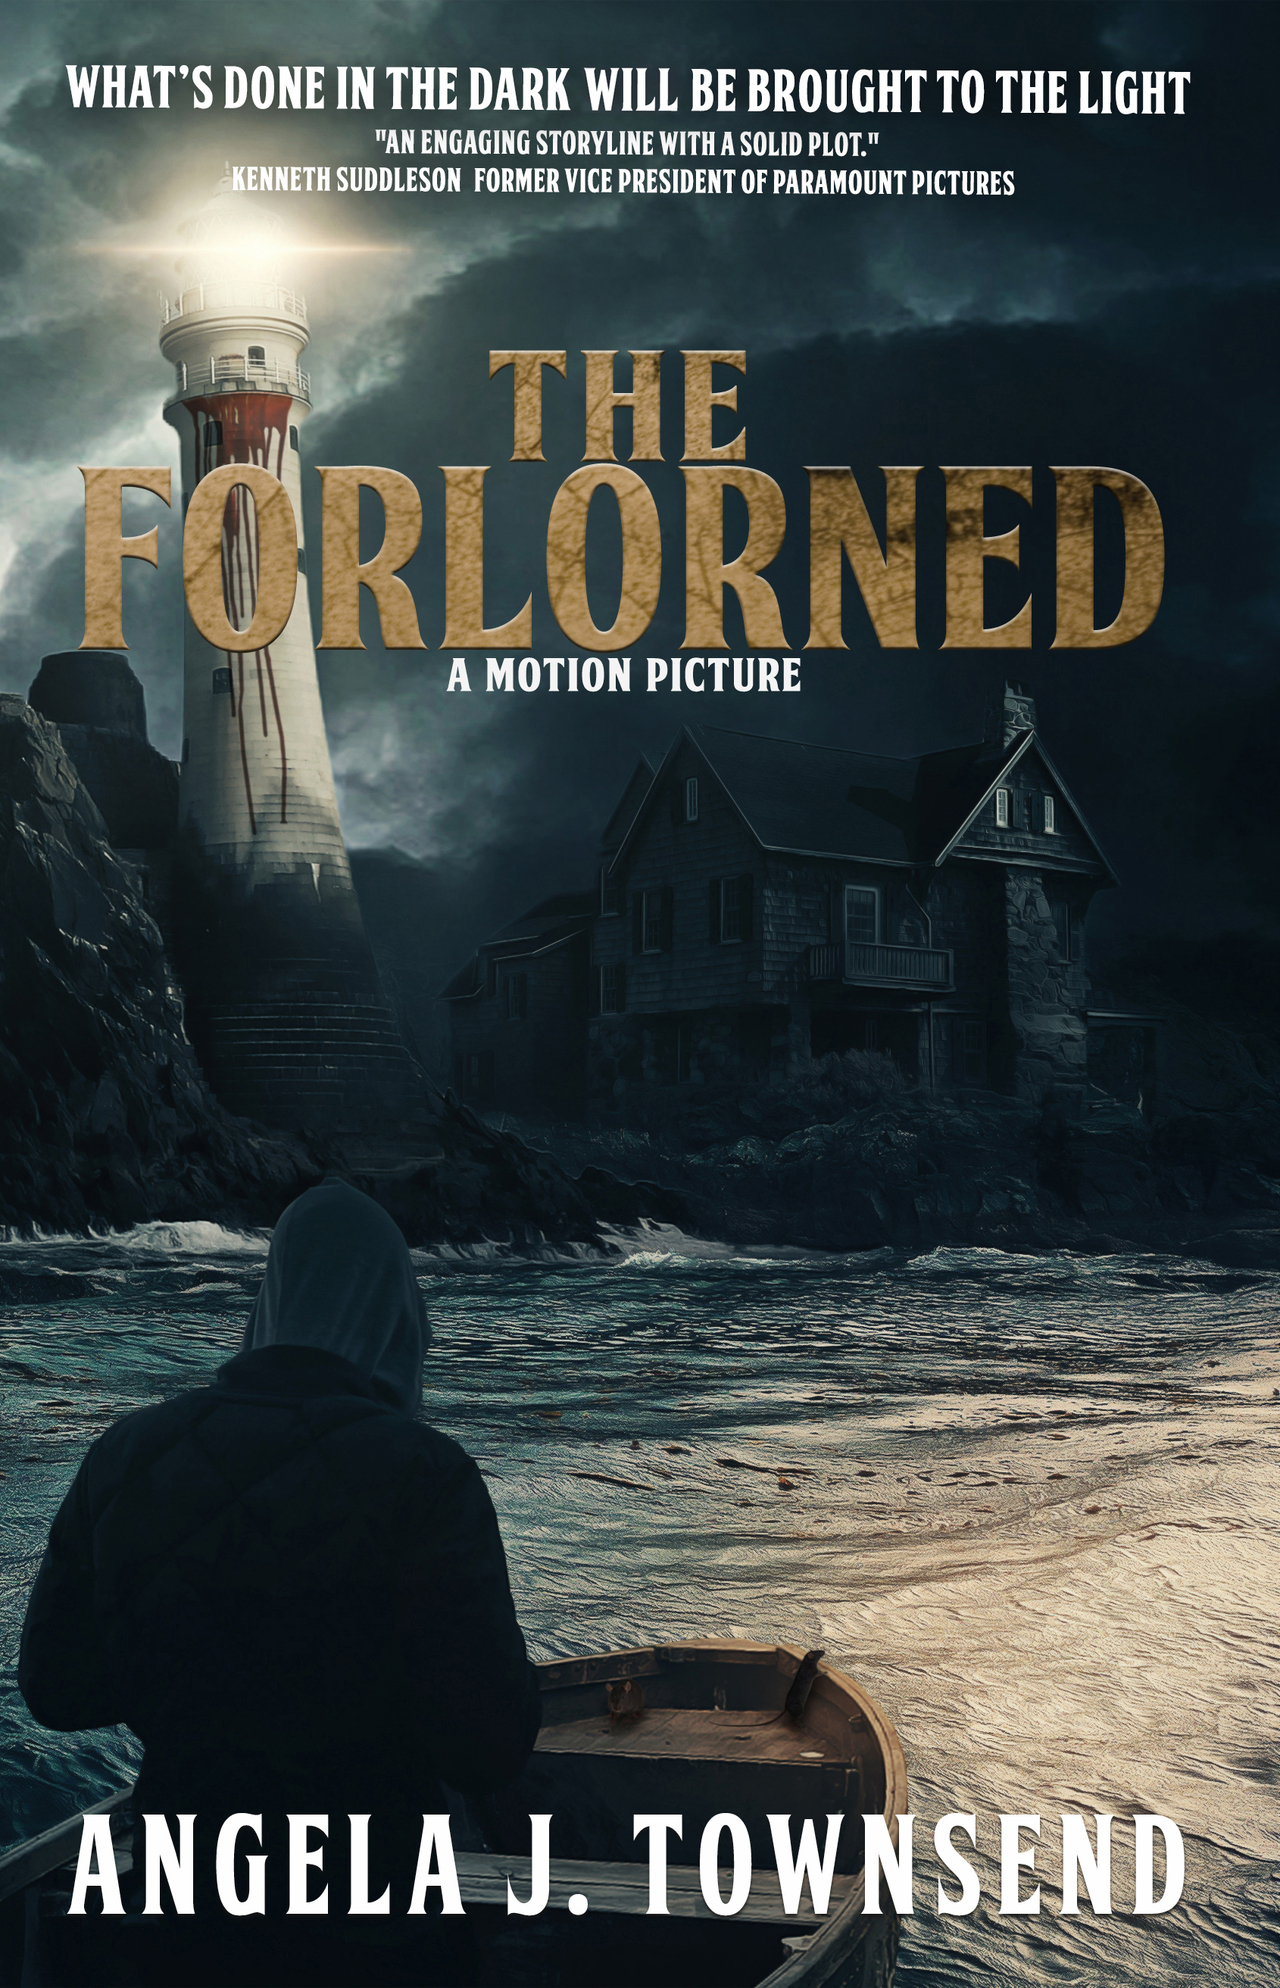 Forlorned cover.jpg will be